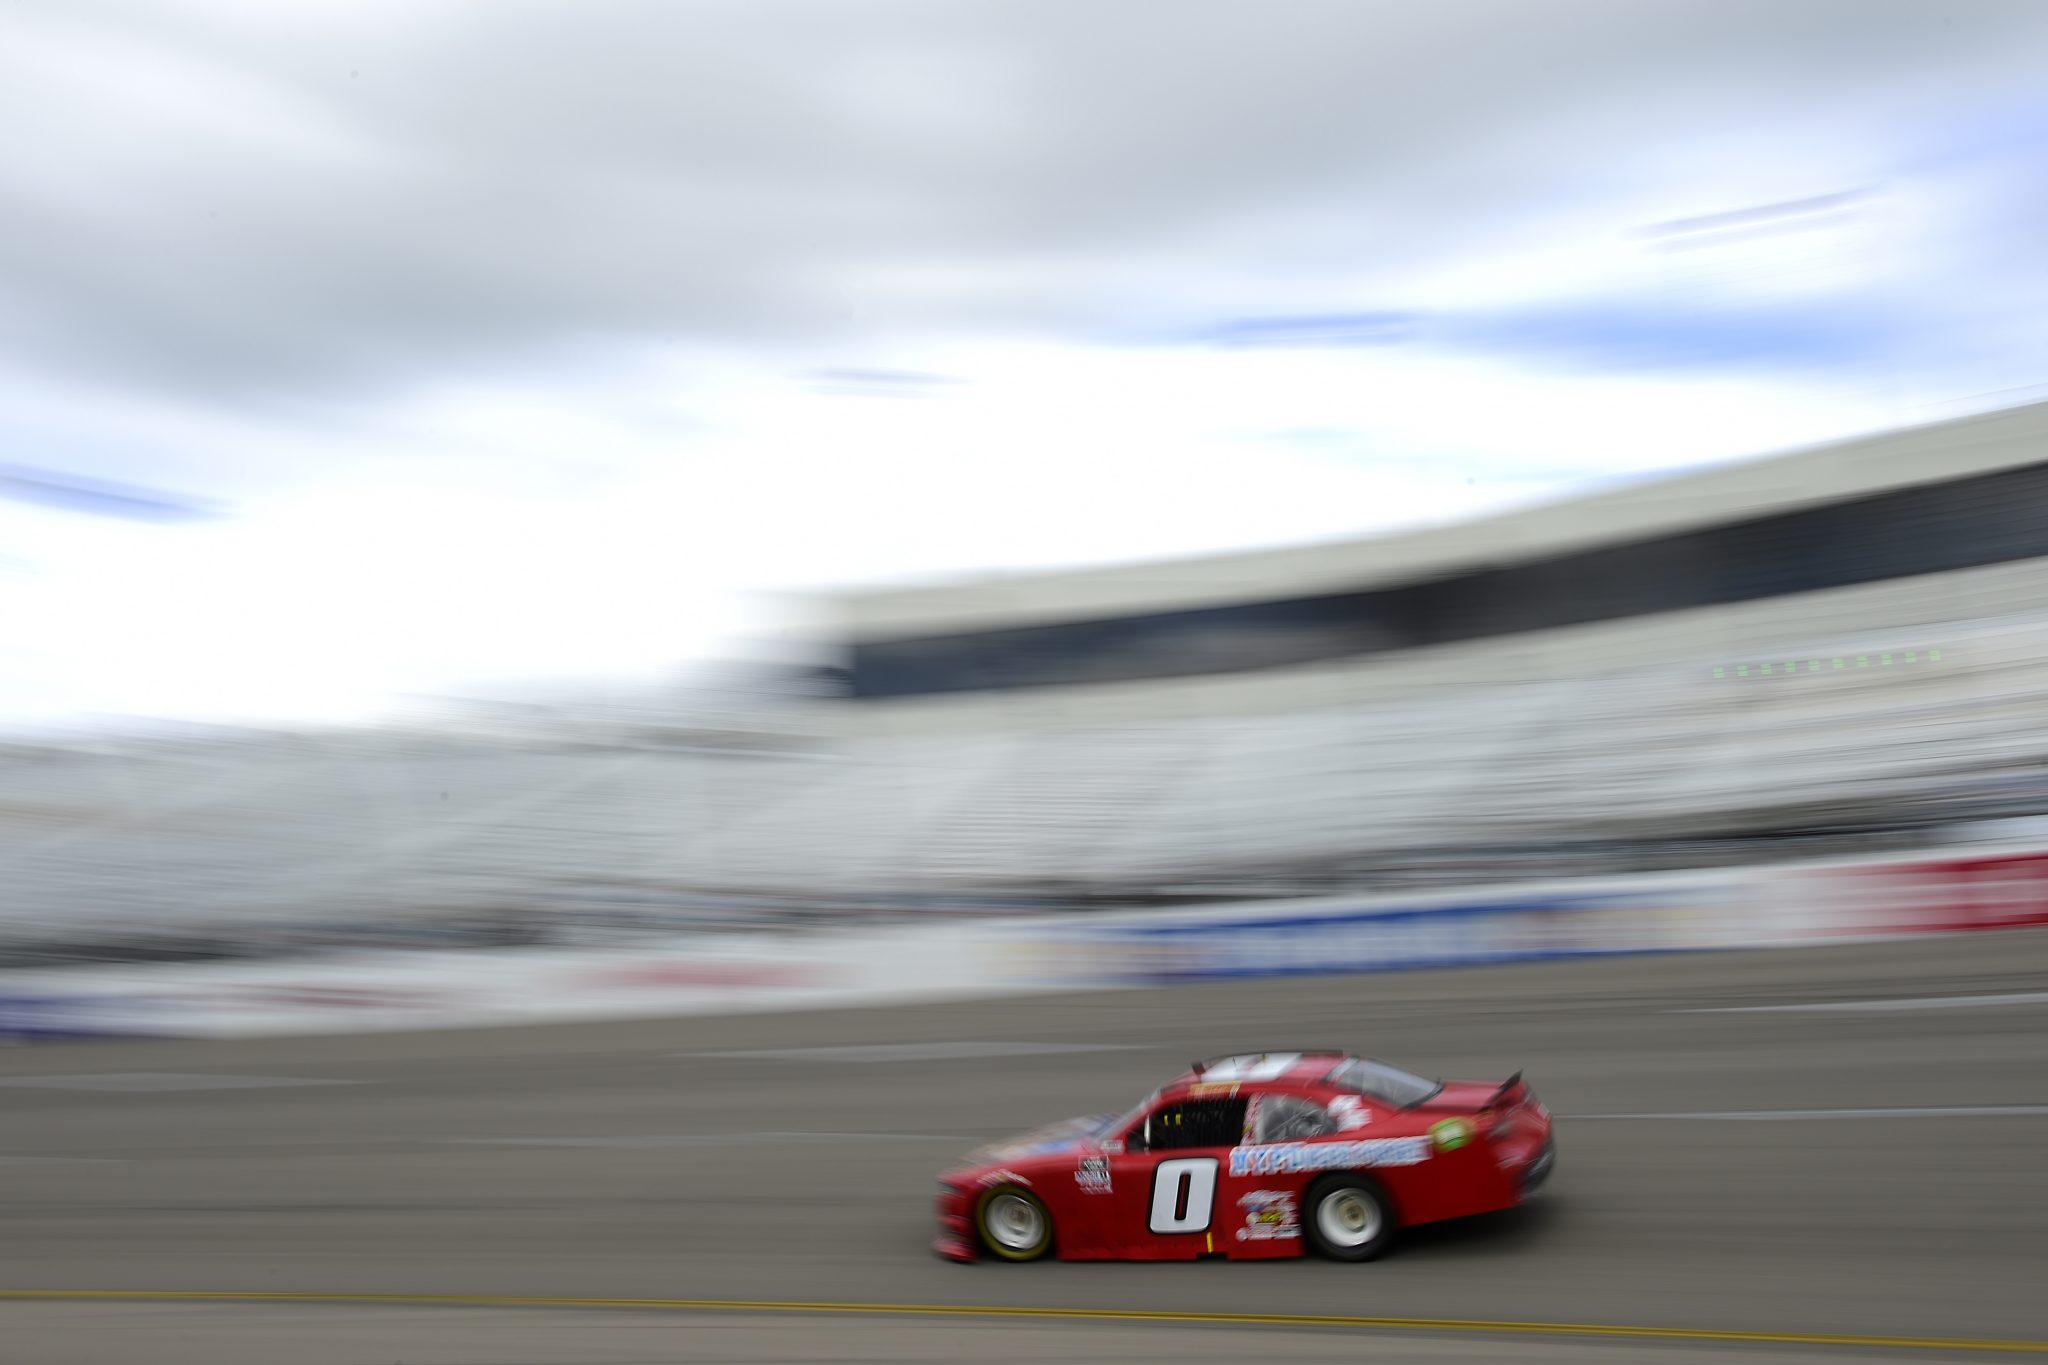 RICHMOND, VIRGINIA - SEPTEMBER 12: Jeffrey Earnhardt, driver of the #0 TeamJDMotorsports.com Chevrolet, drives during the NASCAR Xfinity Series Virginia is for Racing Lovers 250 at Richmond Raceway on September 12, 2020 in Richmond, Virginia. (Photo by Jared C. Tilton/Getty Images) | Getty Images